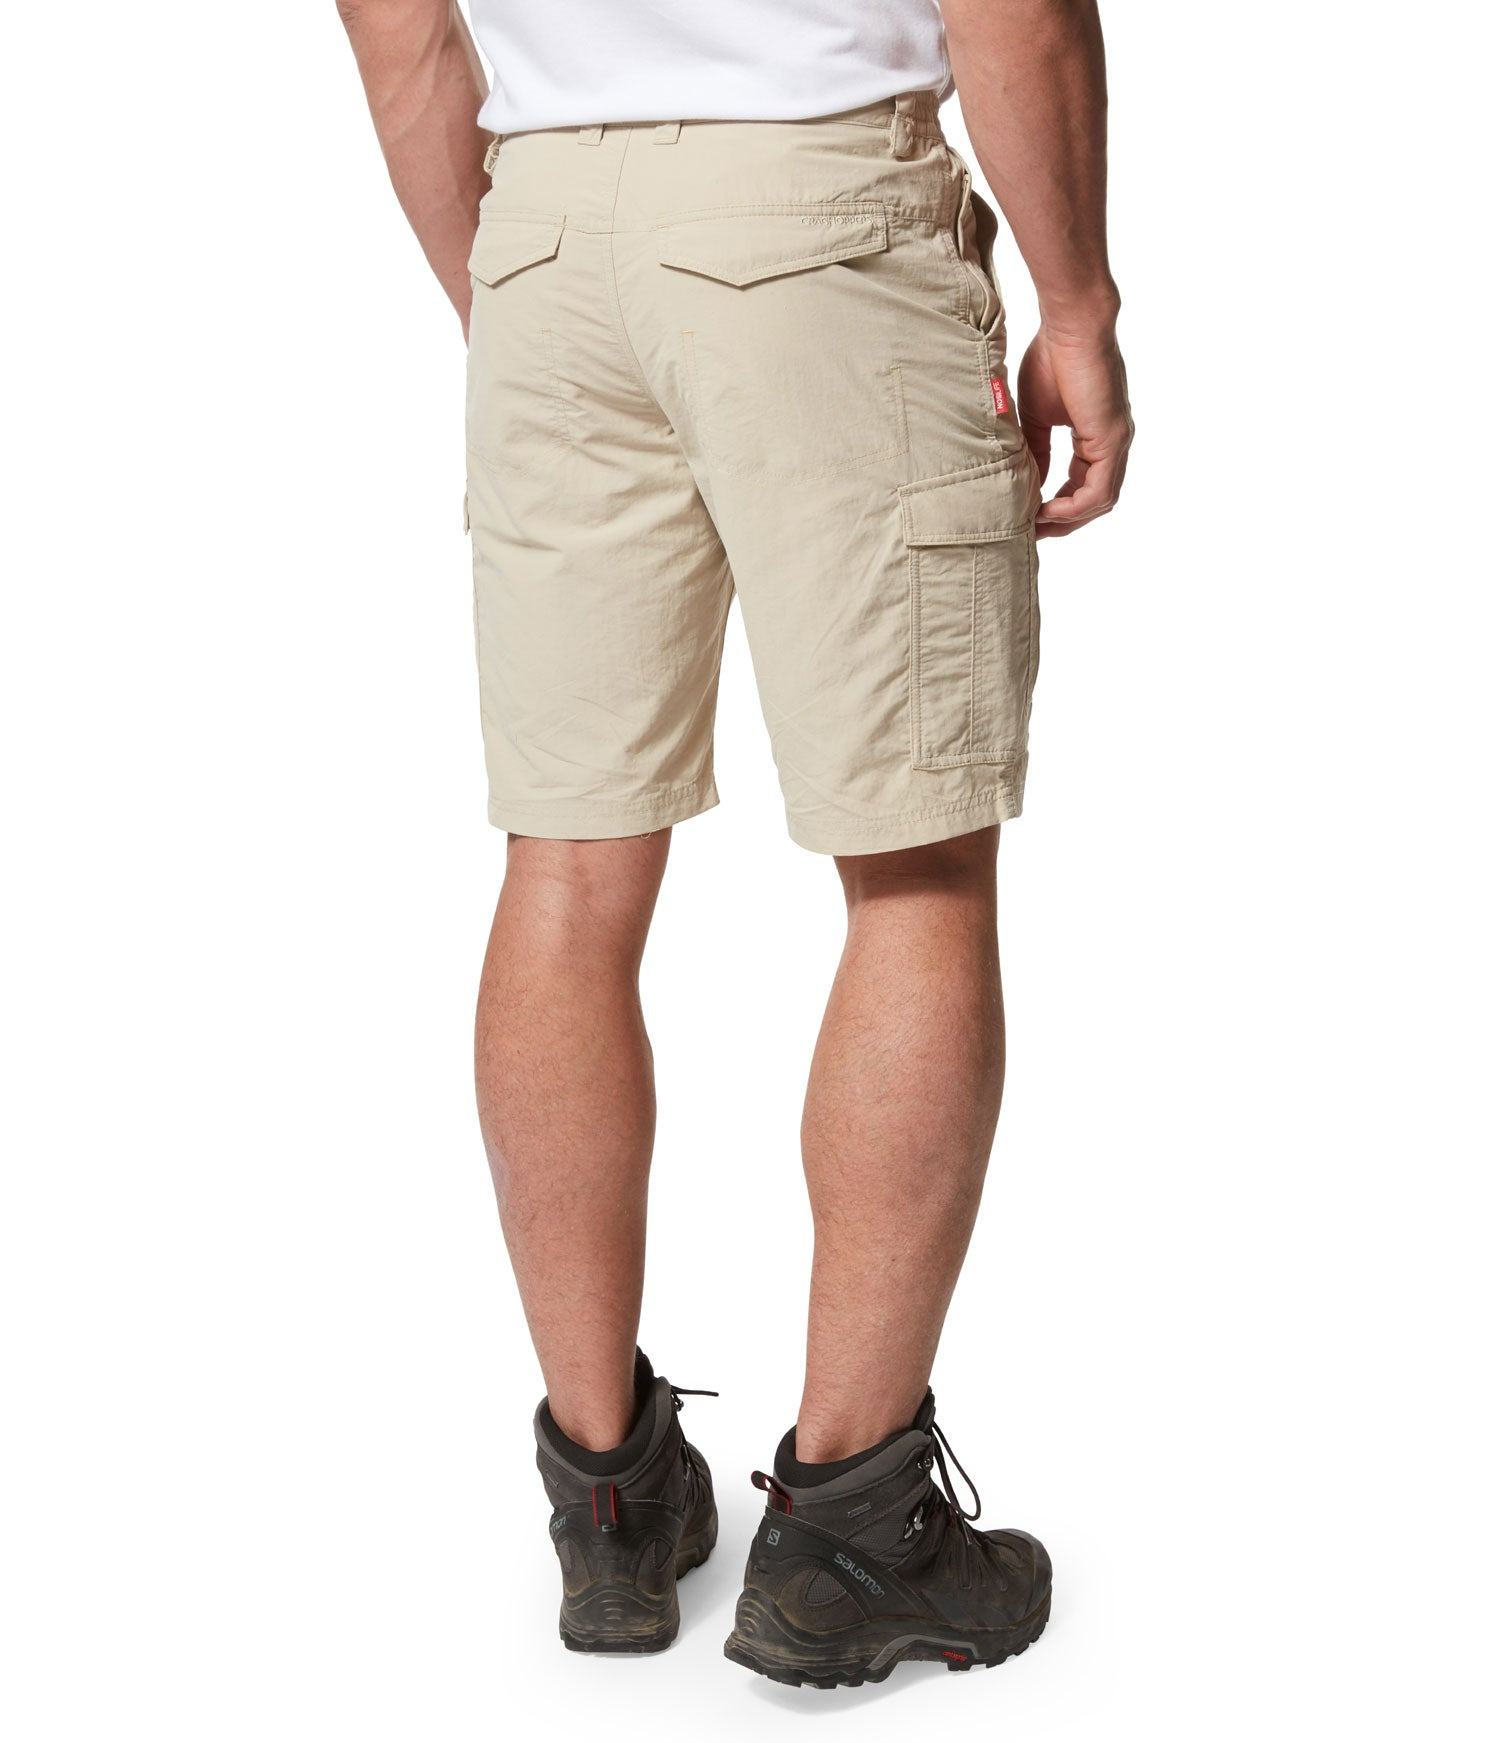 REar view travel shorts